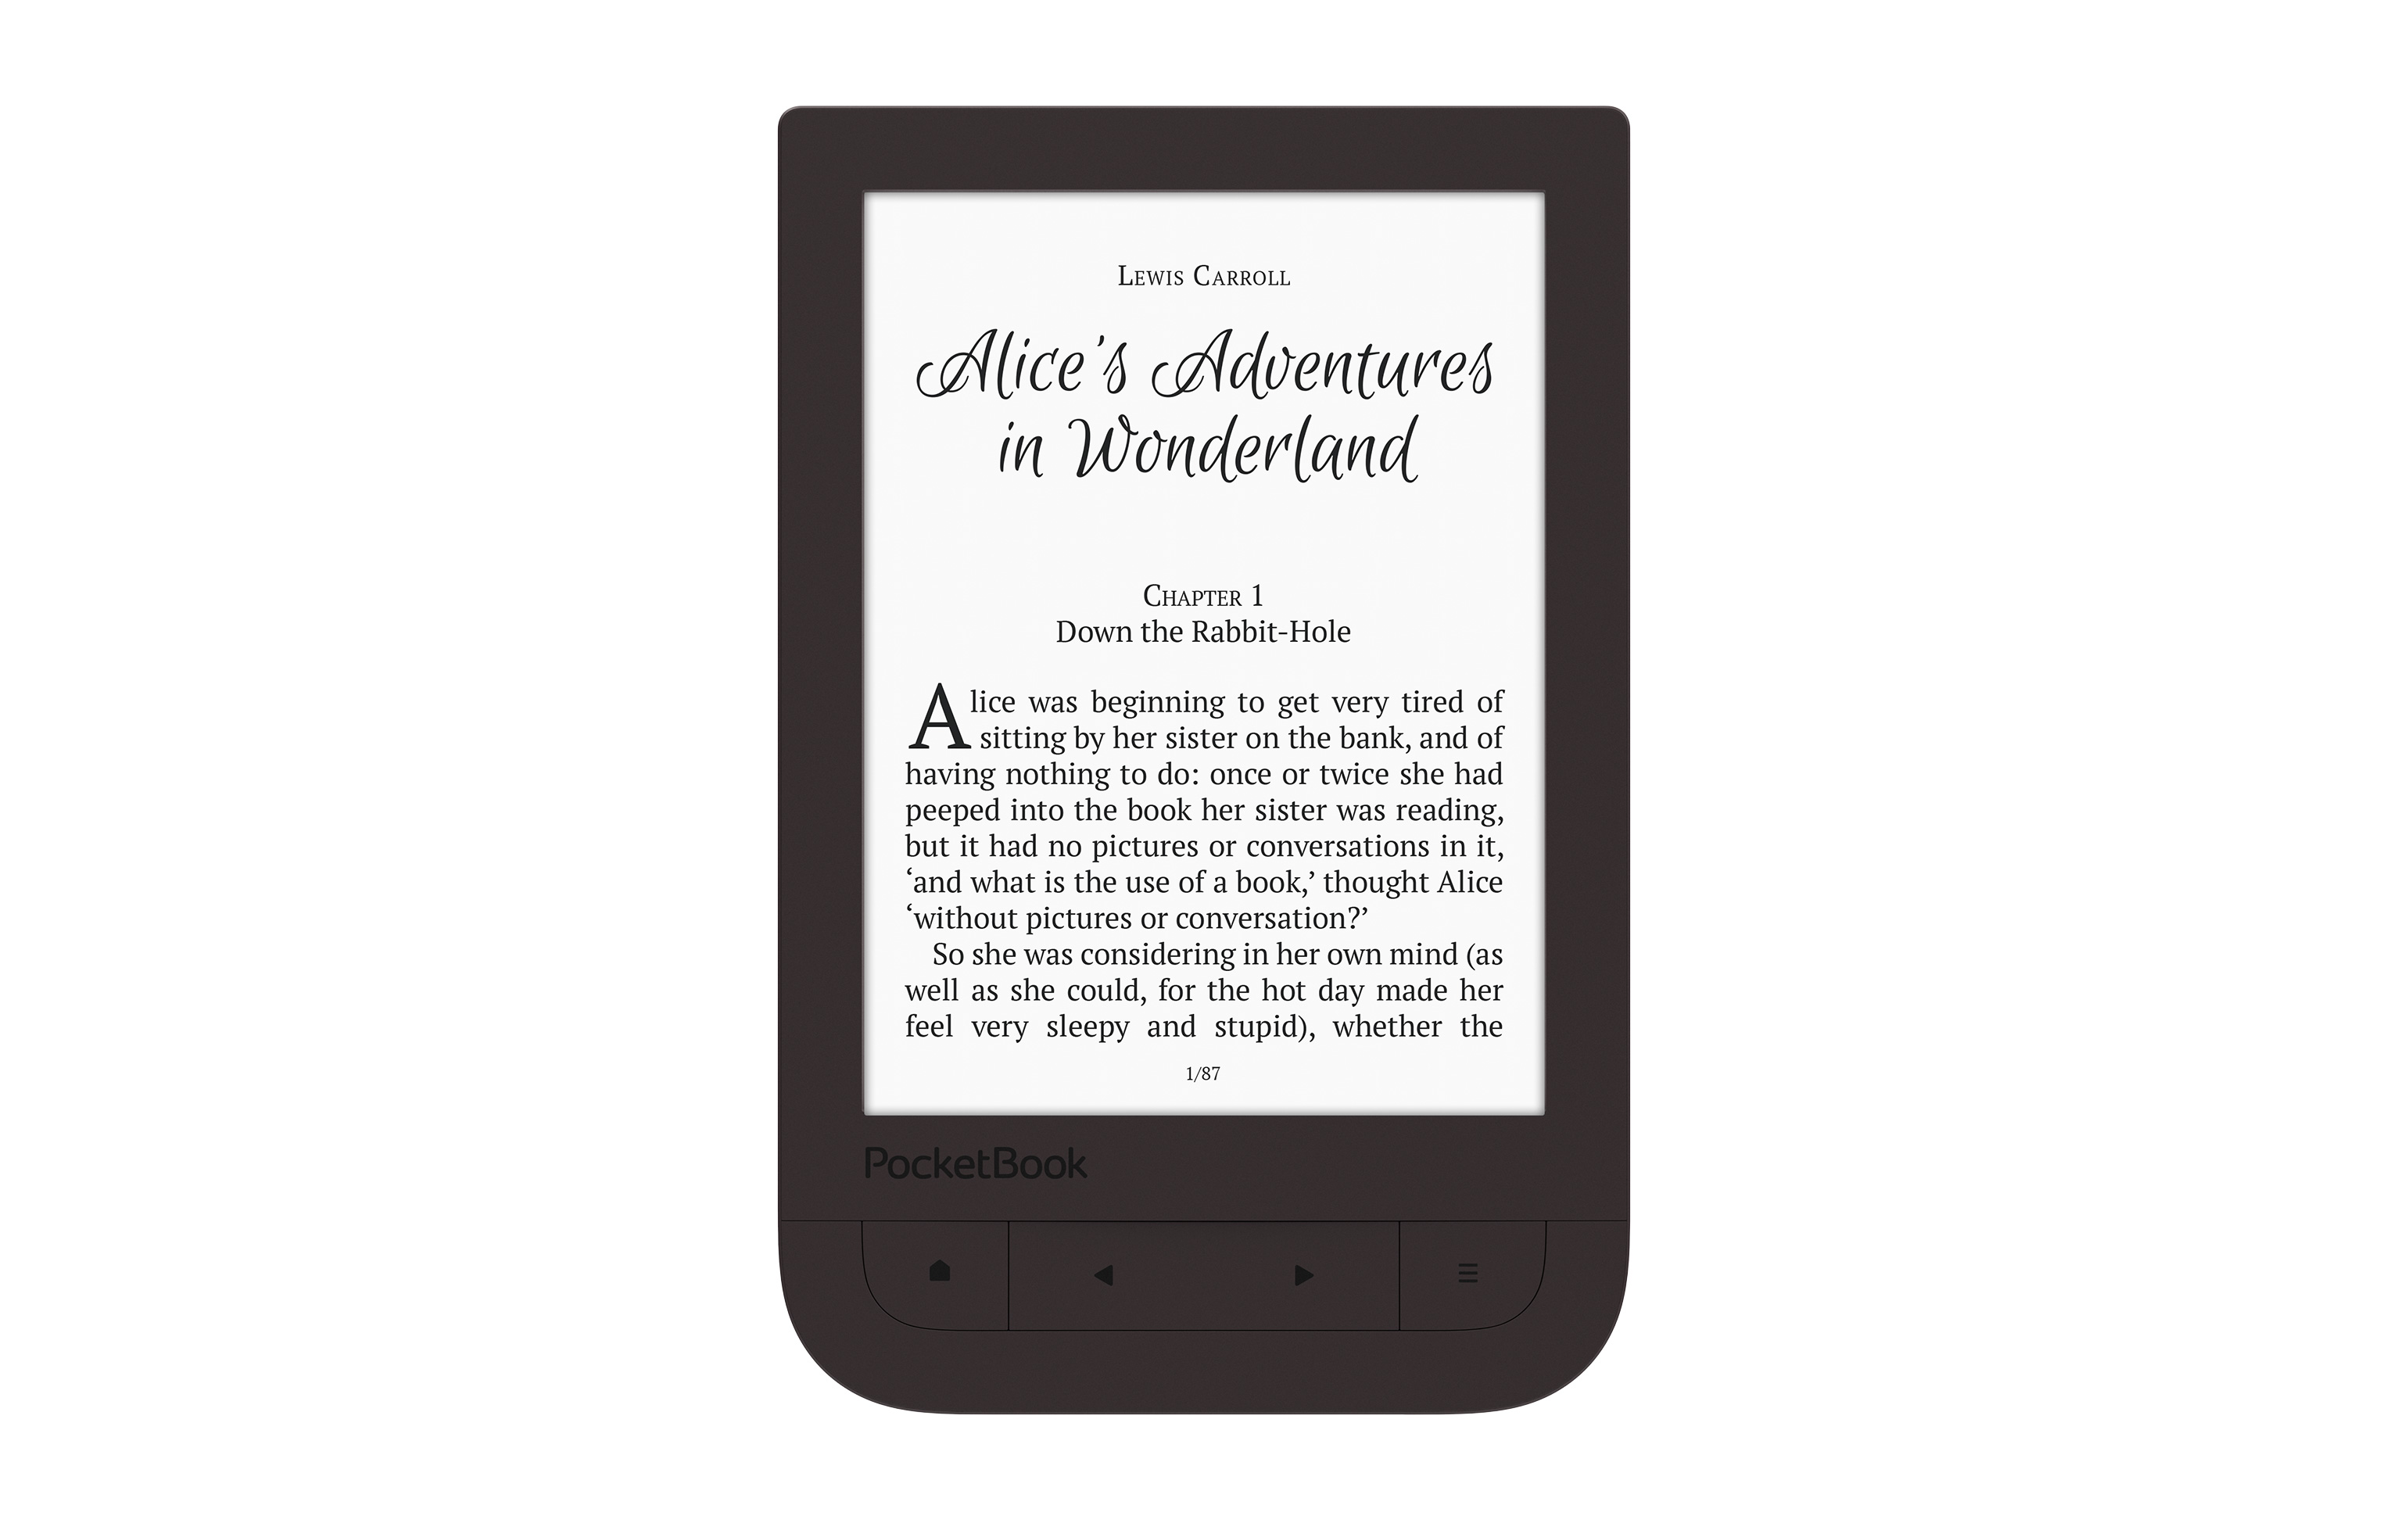 E-book PocketBook 623 Touch 2: review, features and reviews 26